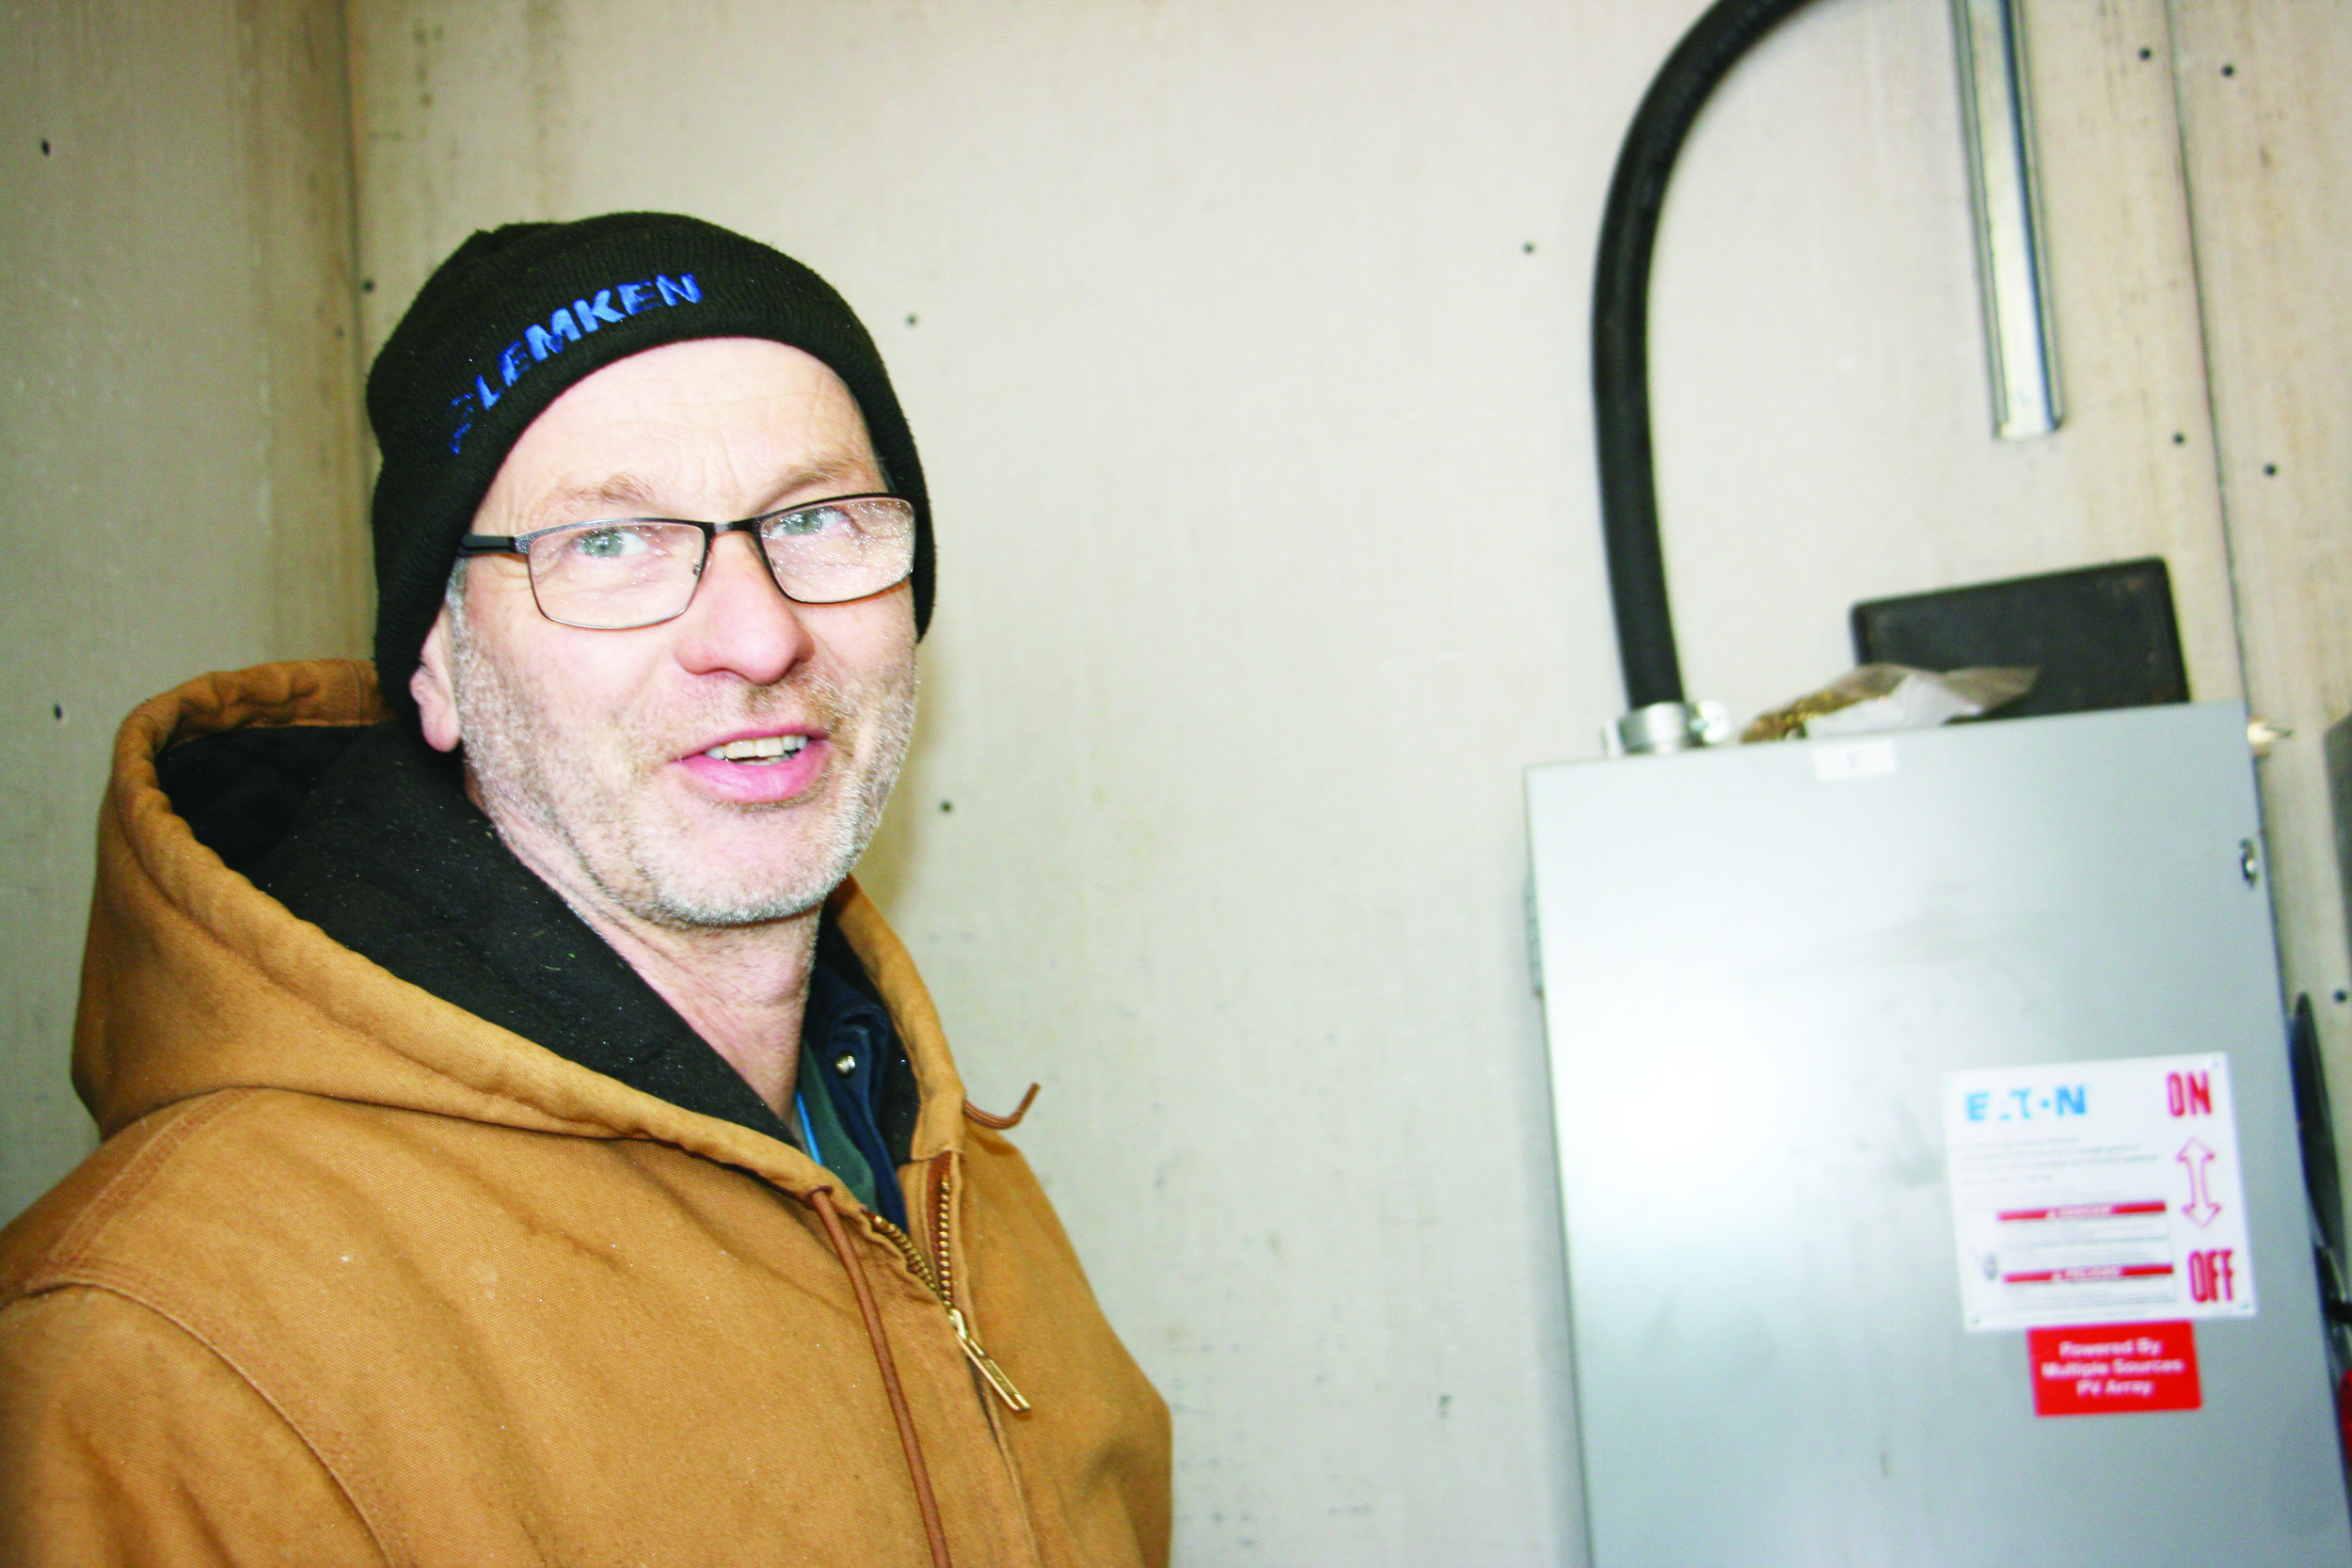 Frank Jopp of Auenland Farm in Mount Pisgah, N.B., began selling solar-generated electrical power to the New Brunswick grid in December. The collected power goes through a series of breaker panels. (George Fullerton photo)